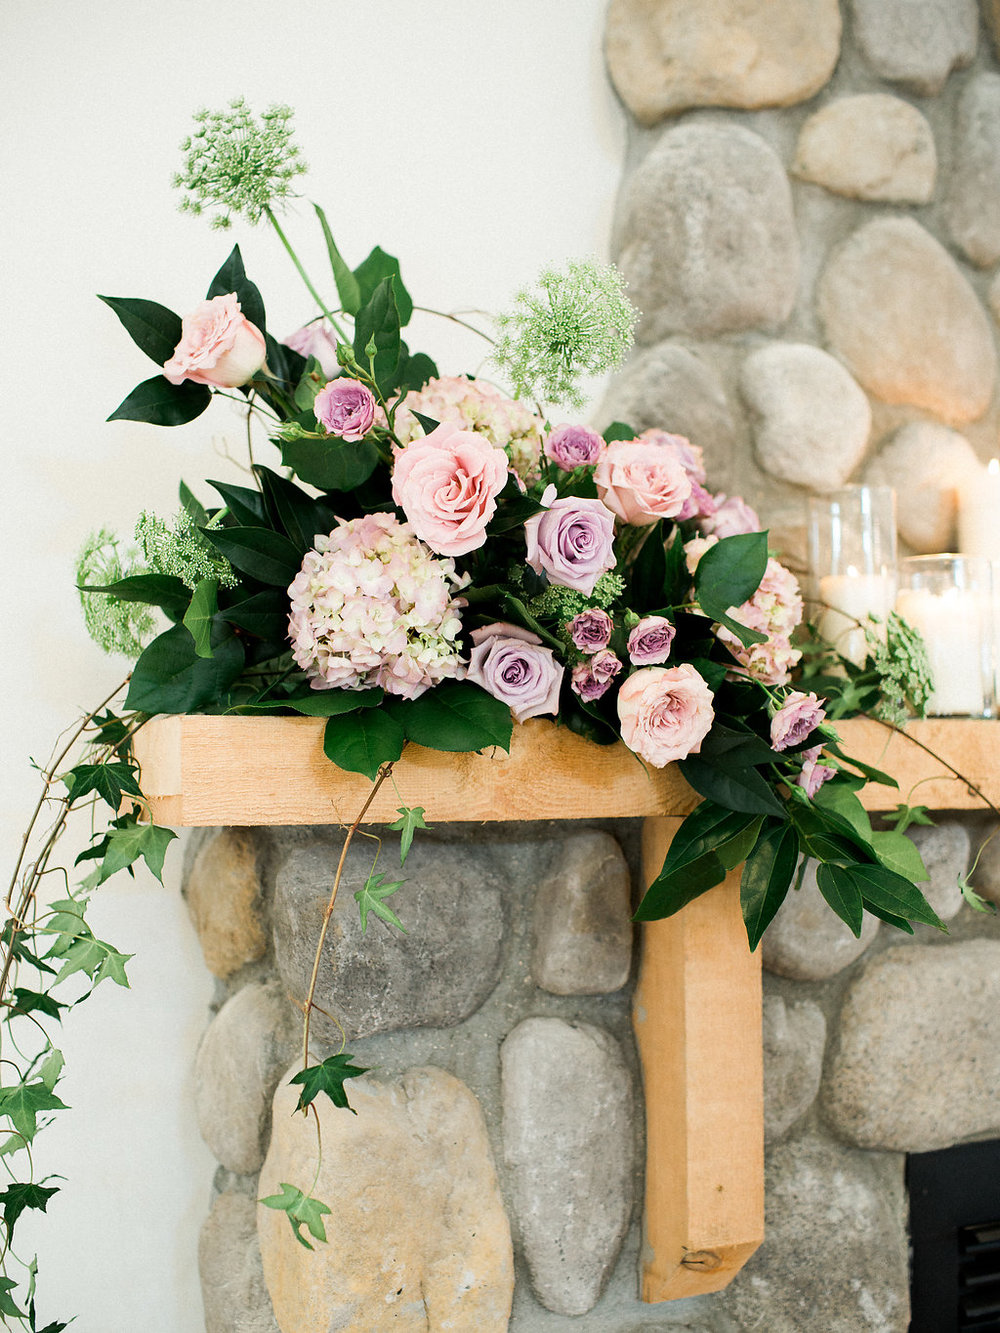 Whitetail Meadow Fireplace - Fireplace Wedding Flowers